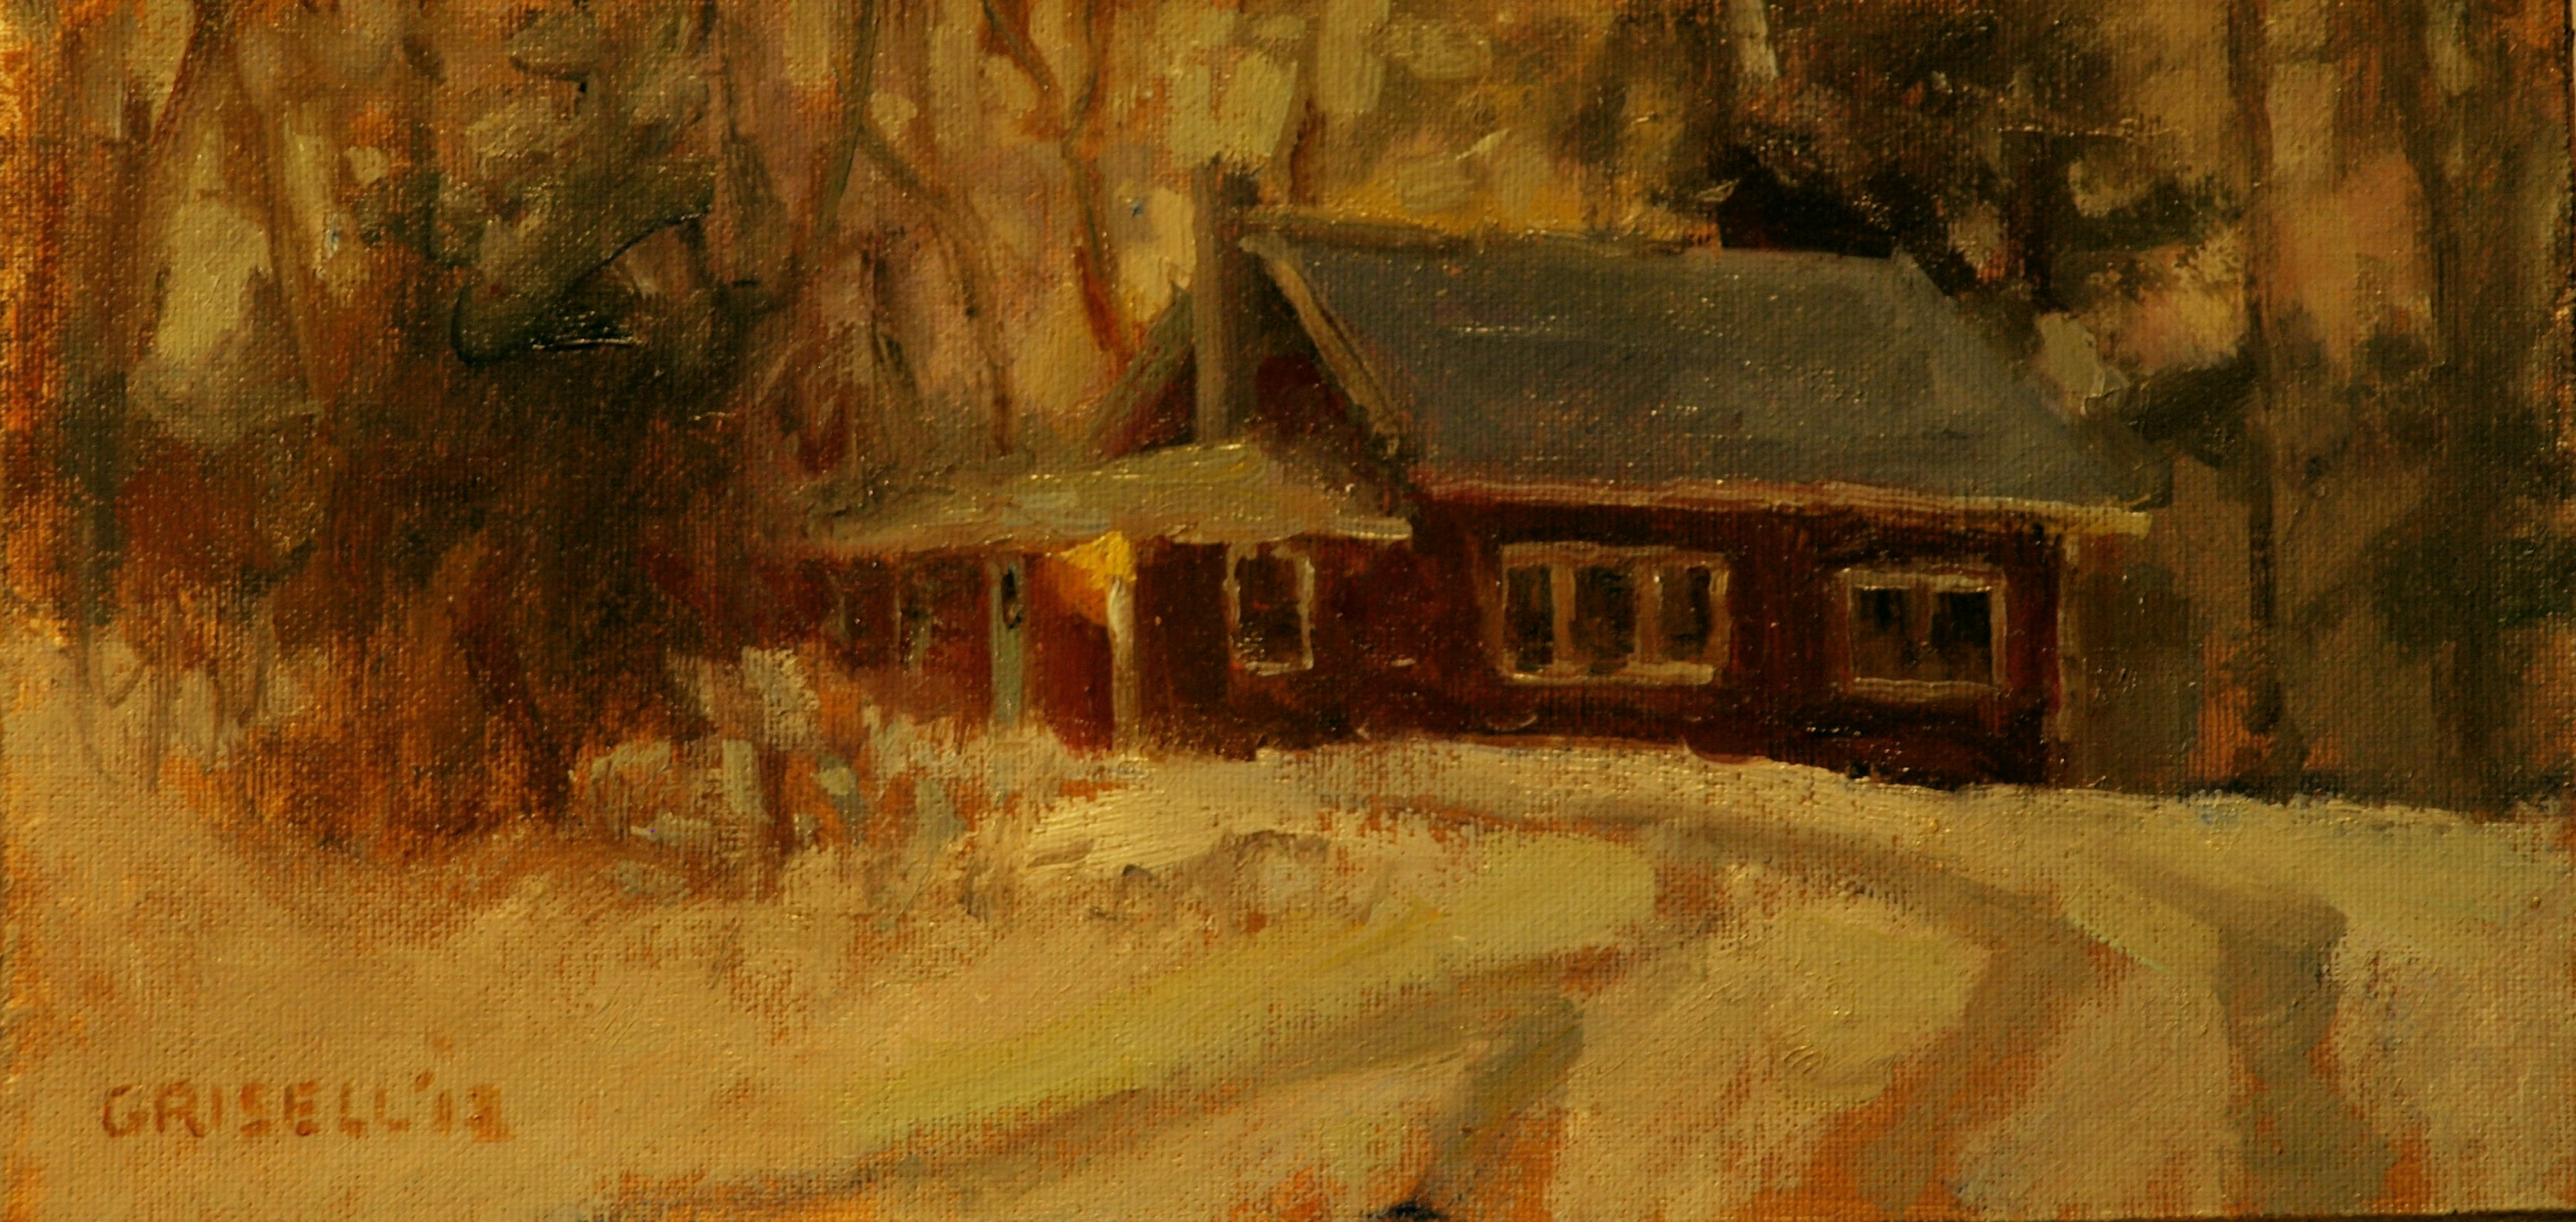 Wheeltracks - Twighlight, Oil on Canvas on Panel, 6 x 12 Inches, by Susan Grisell, $150